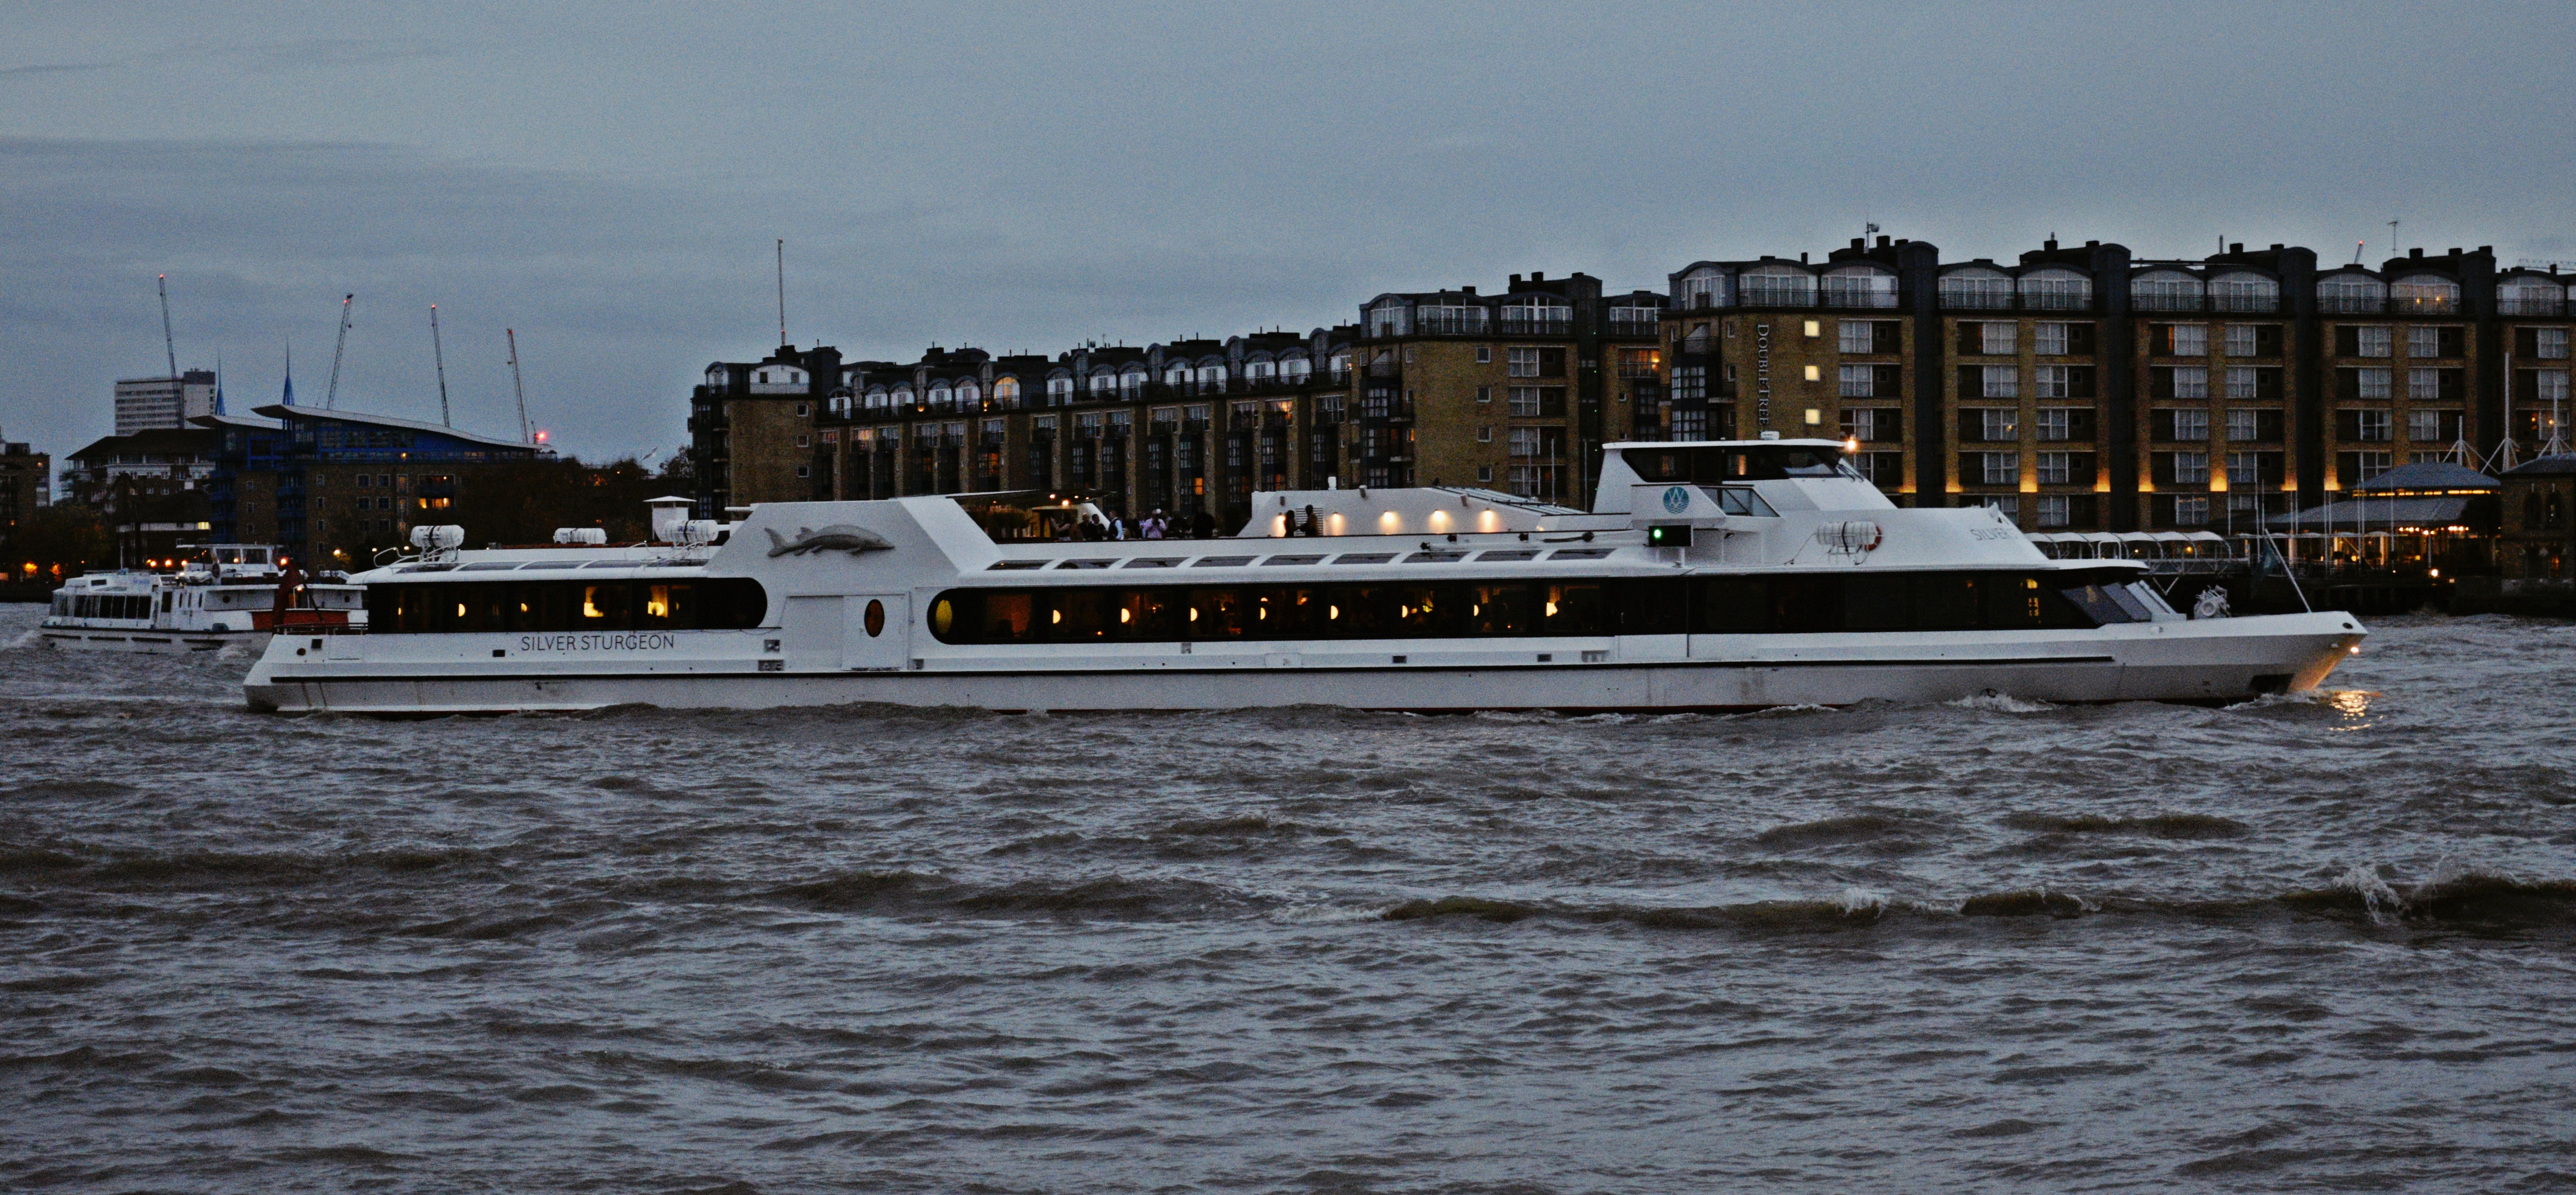 Night life on the River Thames, Boats, Canary, London, Night, HQ Photo